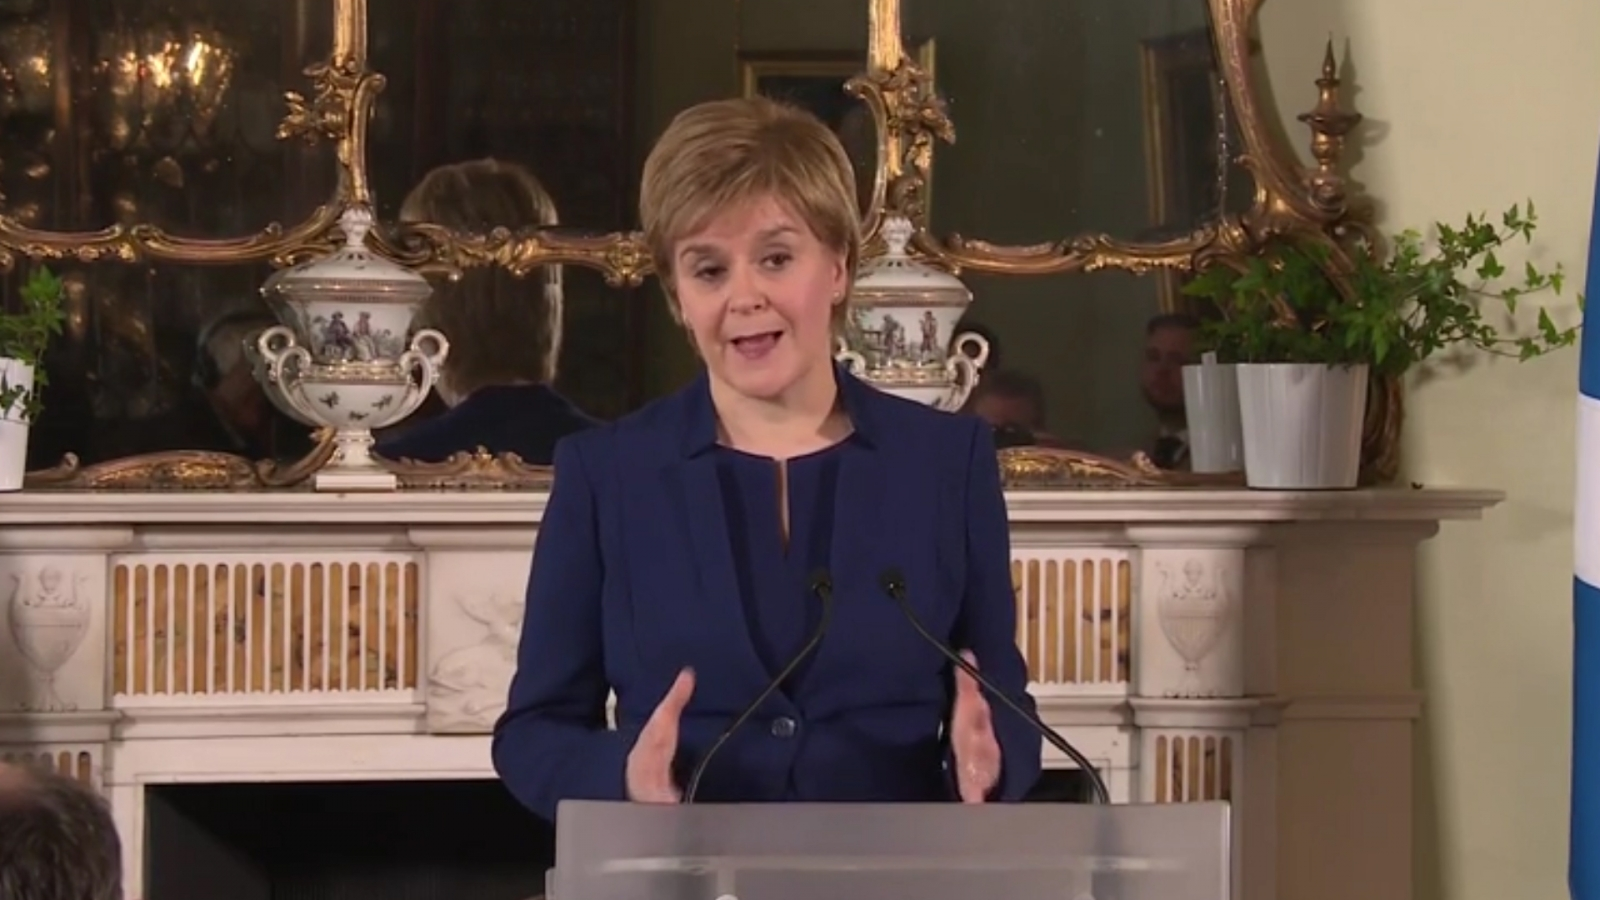 nicola-sturgeon-says-she-will-work-with-others-to-keep-the-tories-out-of-government